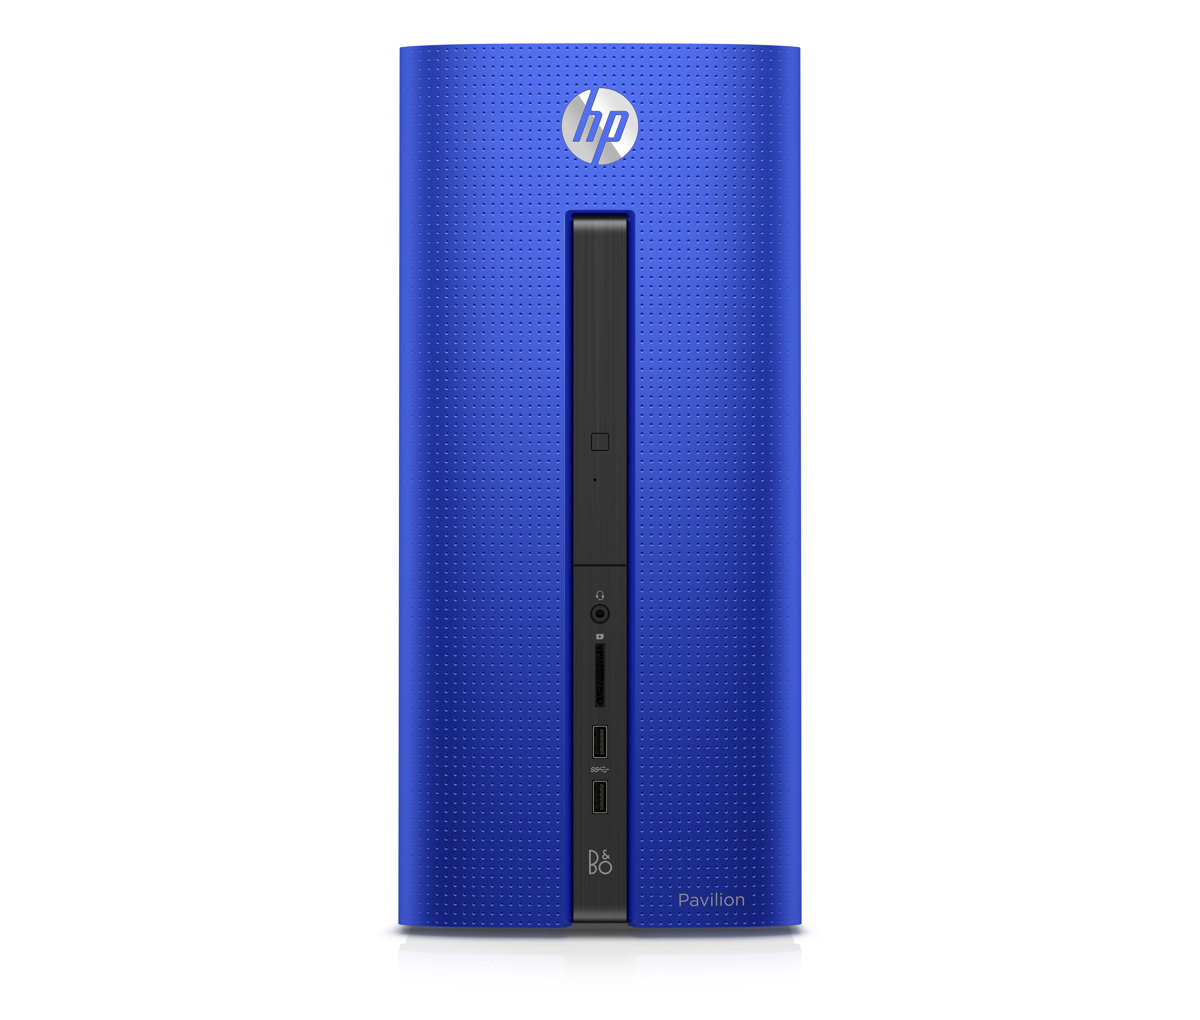 HP Pavilion 550 Gaming Desktop with AMD Quad Core A10-7800 / 8GB / 1TB HDD + 128GB SSD / Win 10